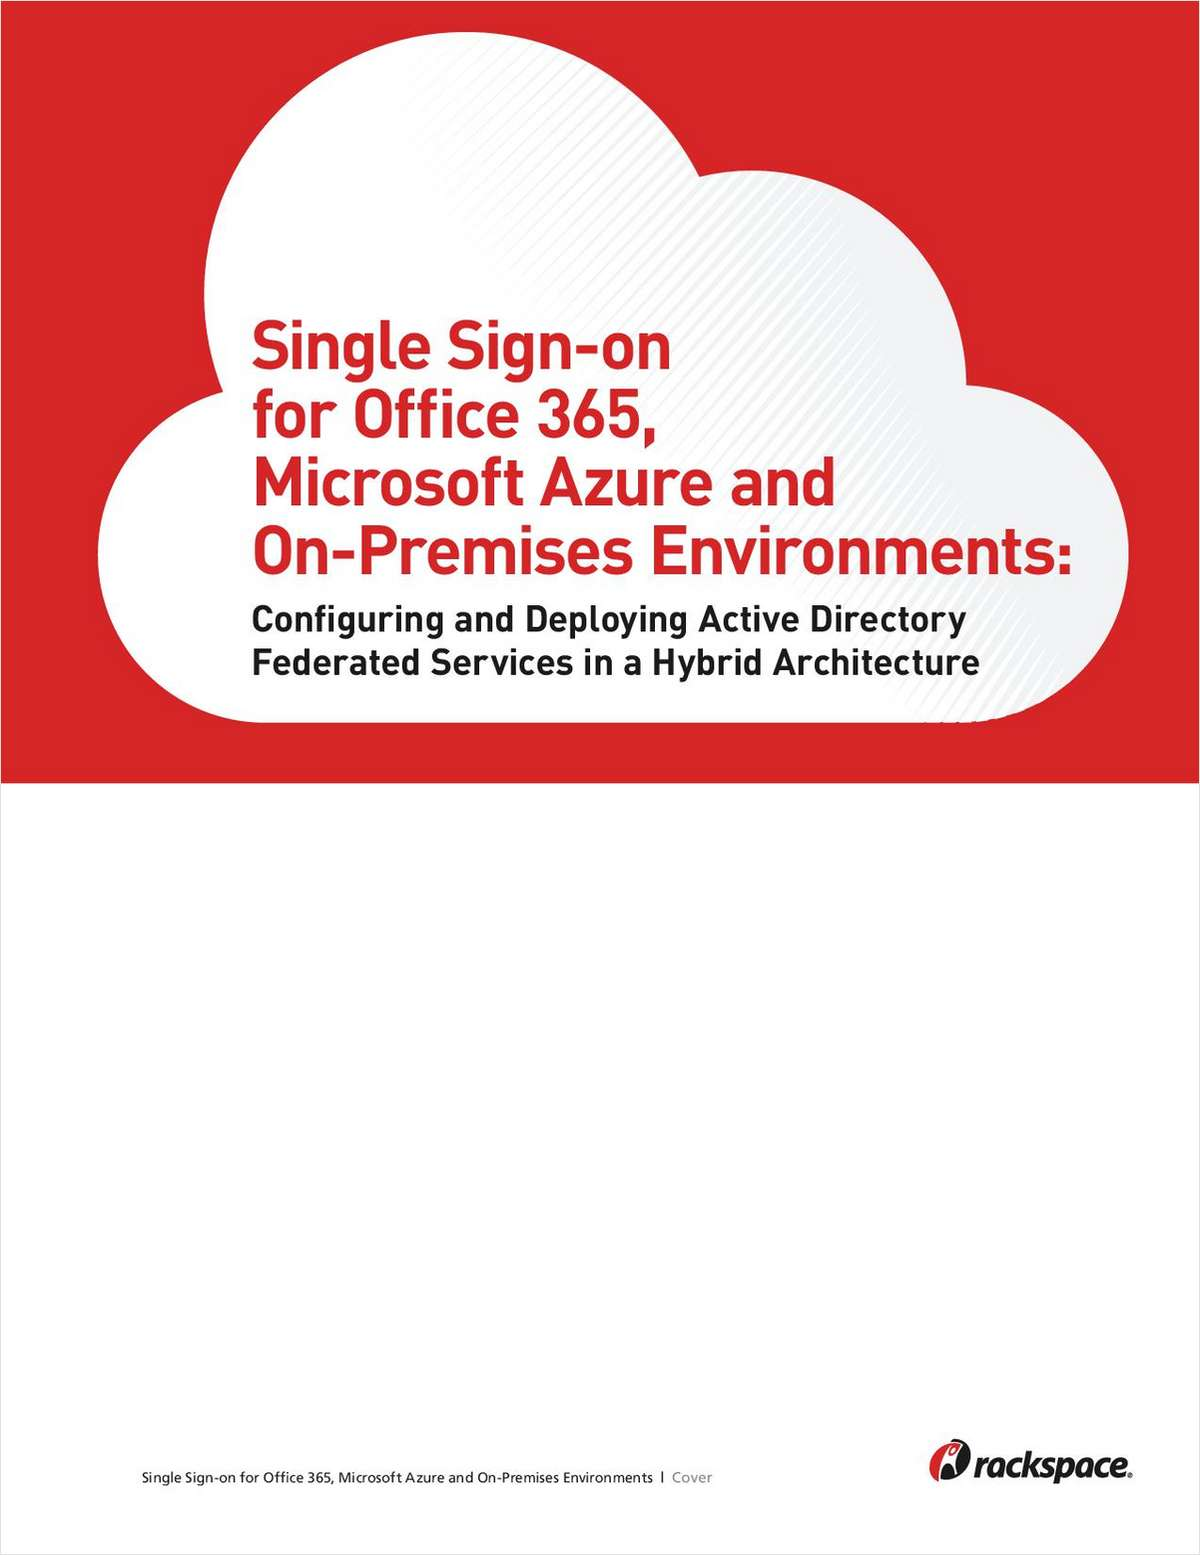 Single sign on for office 365 microsoft azure and on premises environments free rackspace - Single sign on with office 365 ...